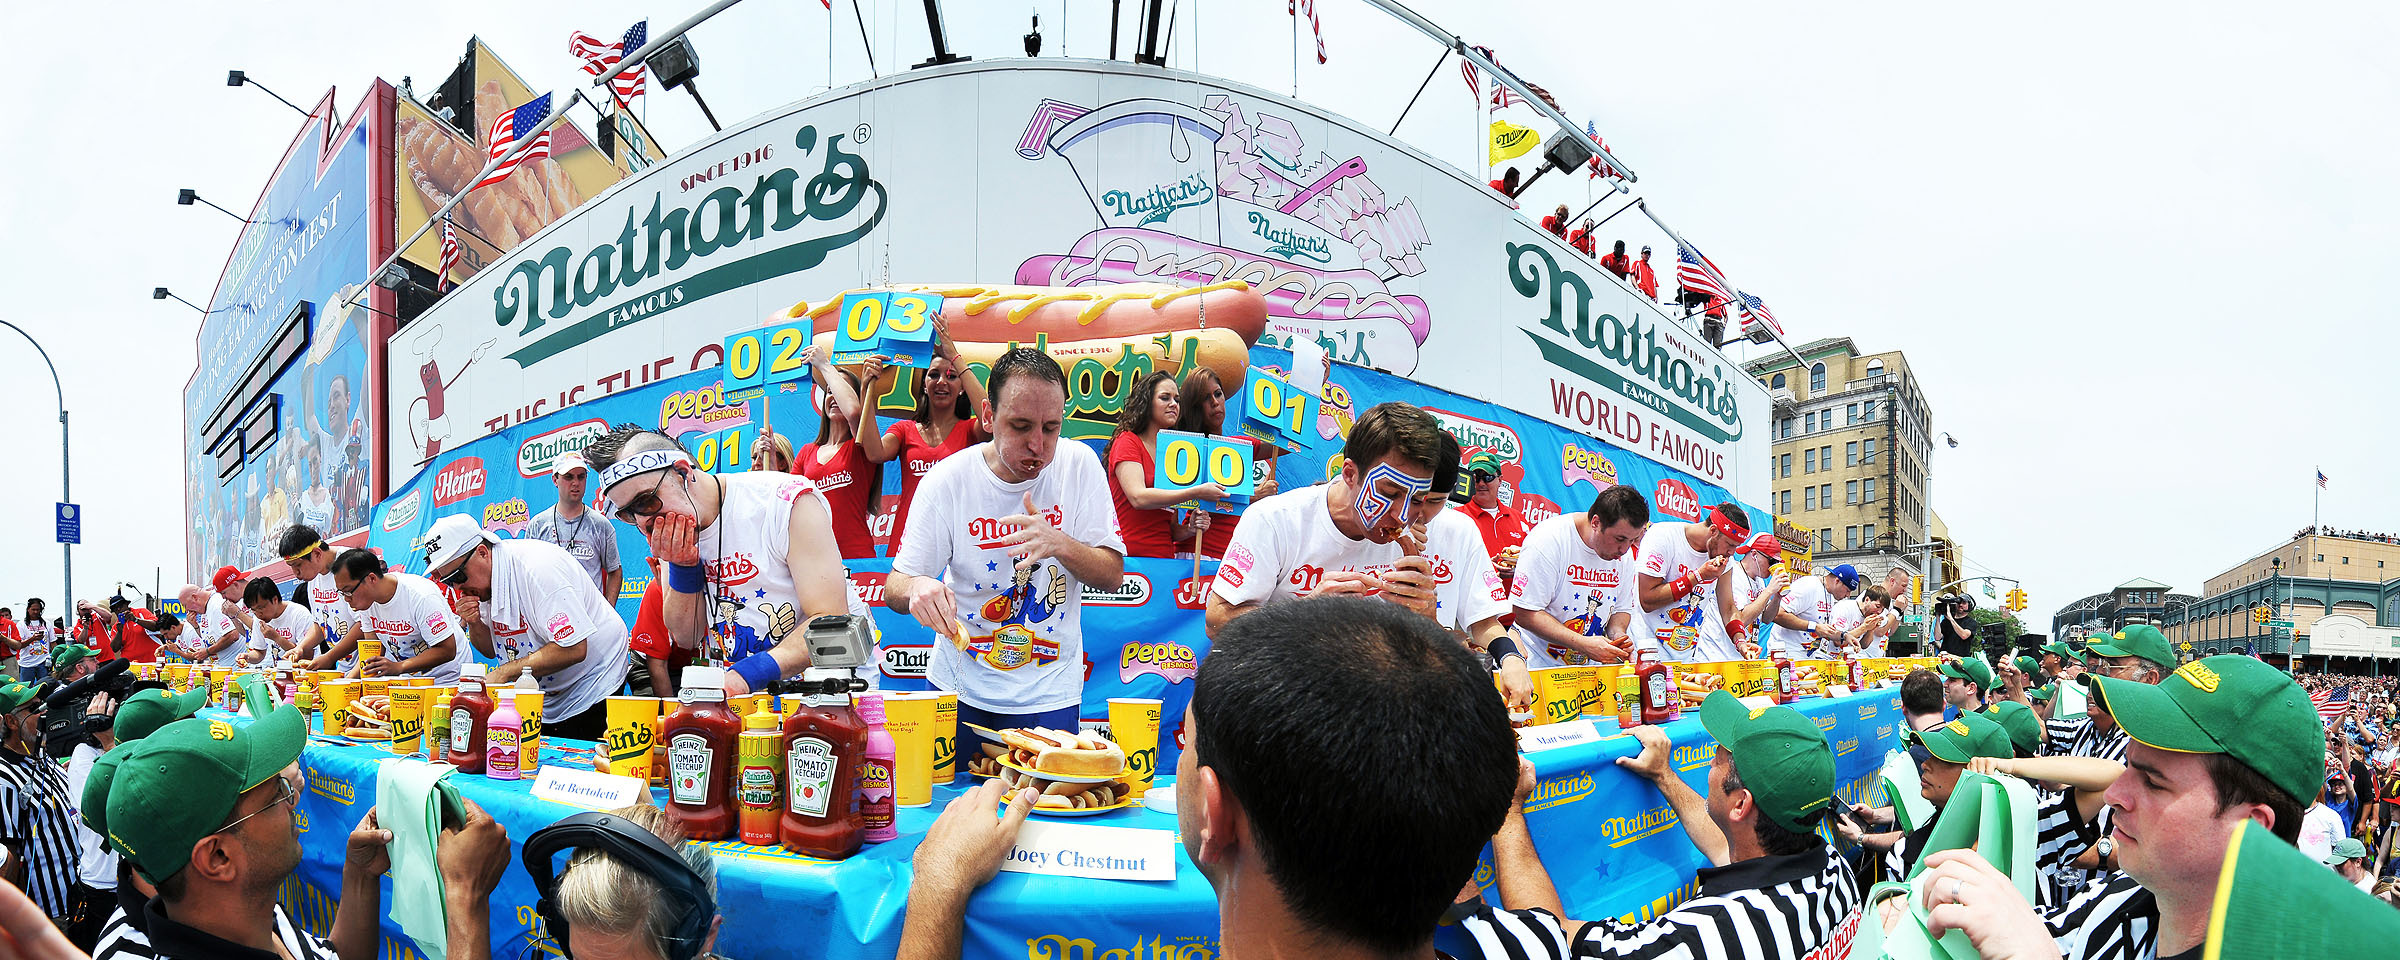 12 facts you didn't know about Nathan's Hot Dog Eating Contest